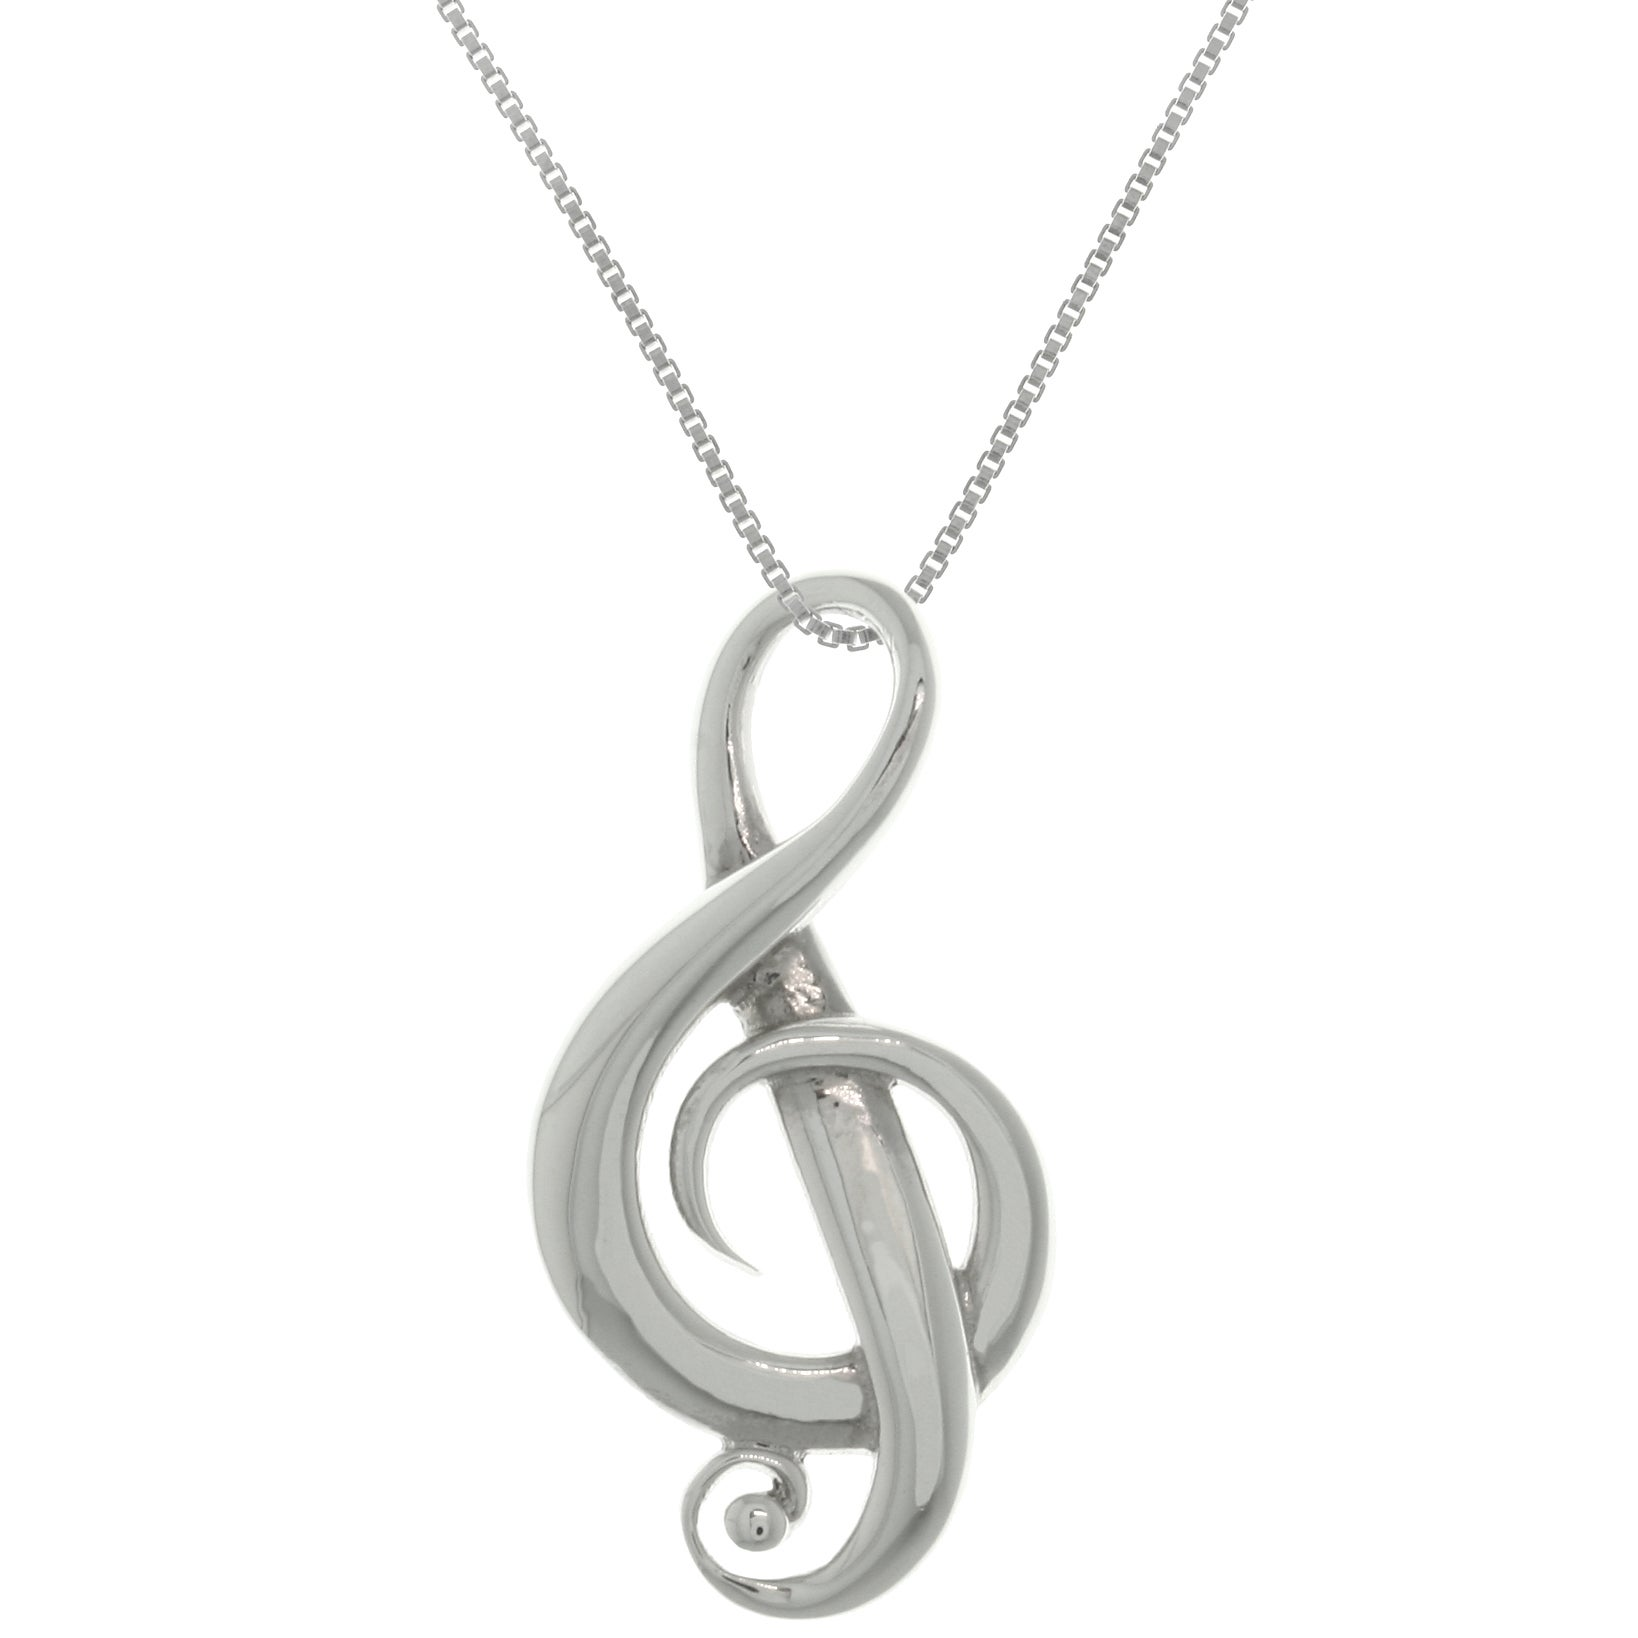 g marciahdesigns fullxfull pendant music clef handmade graduate musician gift jewelry for necklace il silver gifts sterling products lover mhd